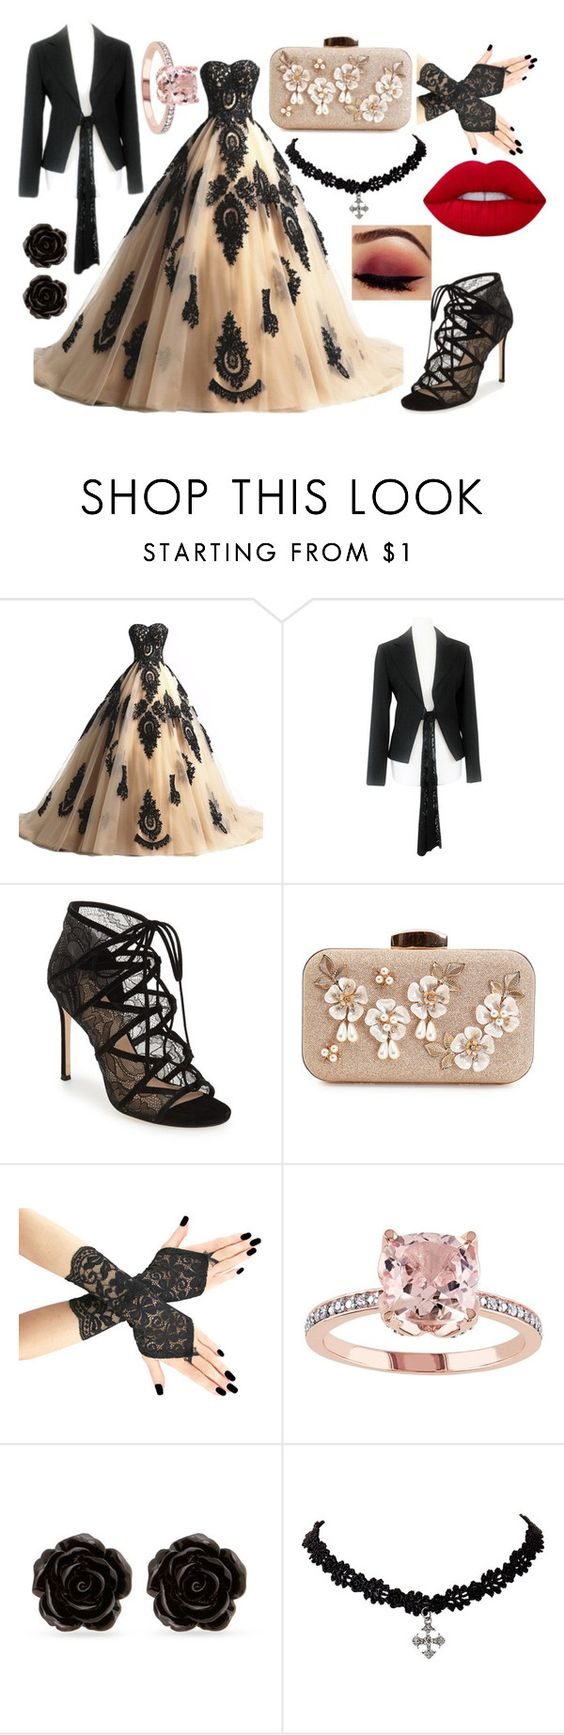 """Prom Badass"" by nikowolfcat ❤ liked on Polyvore featuring Più & Più, Pour La Victoire, Erica Lyons and Lime Crime"